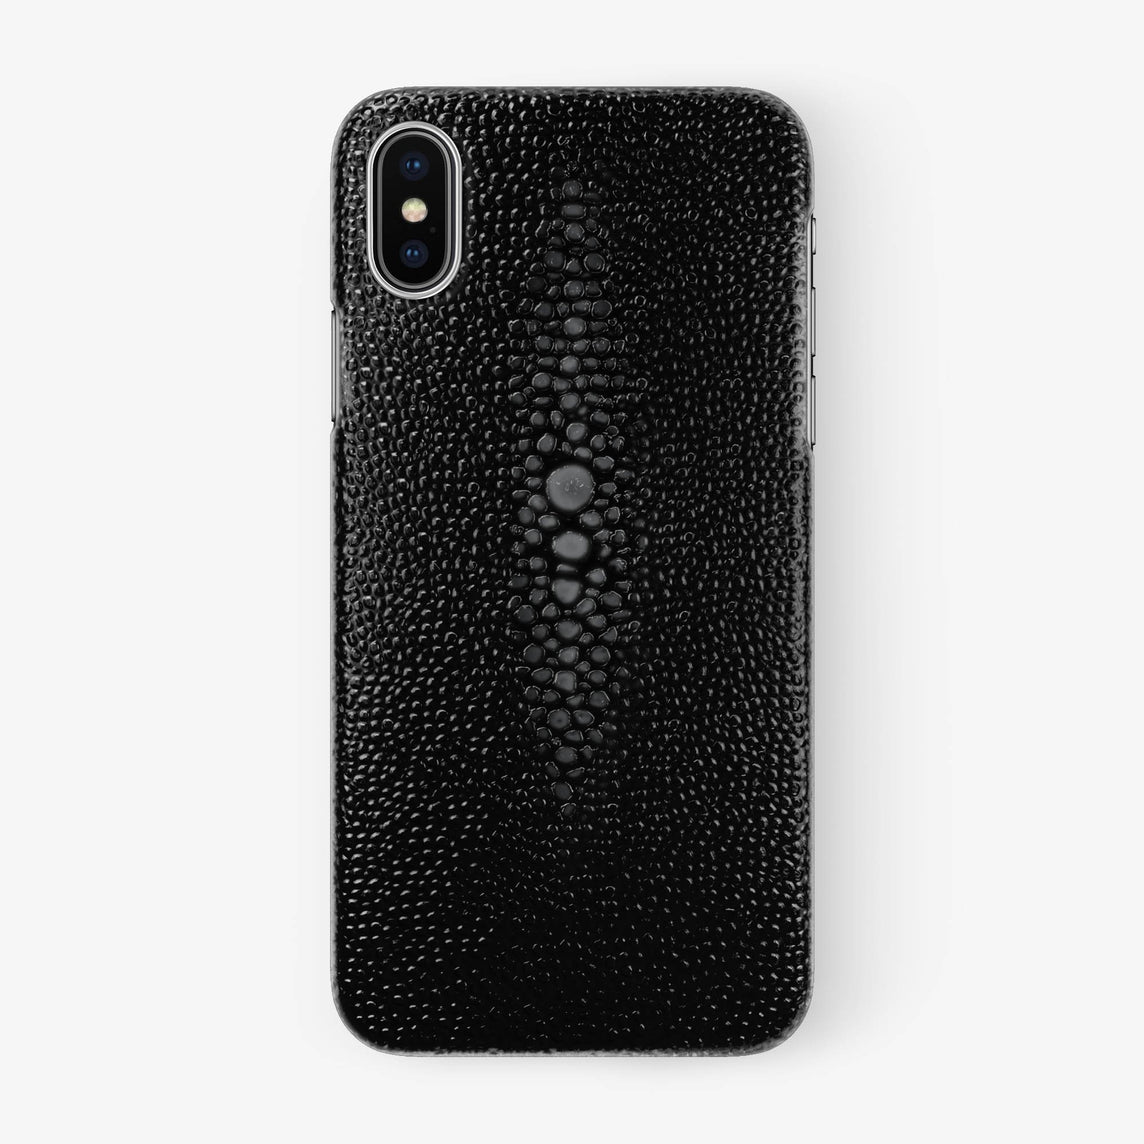 Stingray Case iPhone X/Xs | Black - Stainless Steel